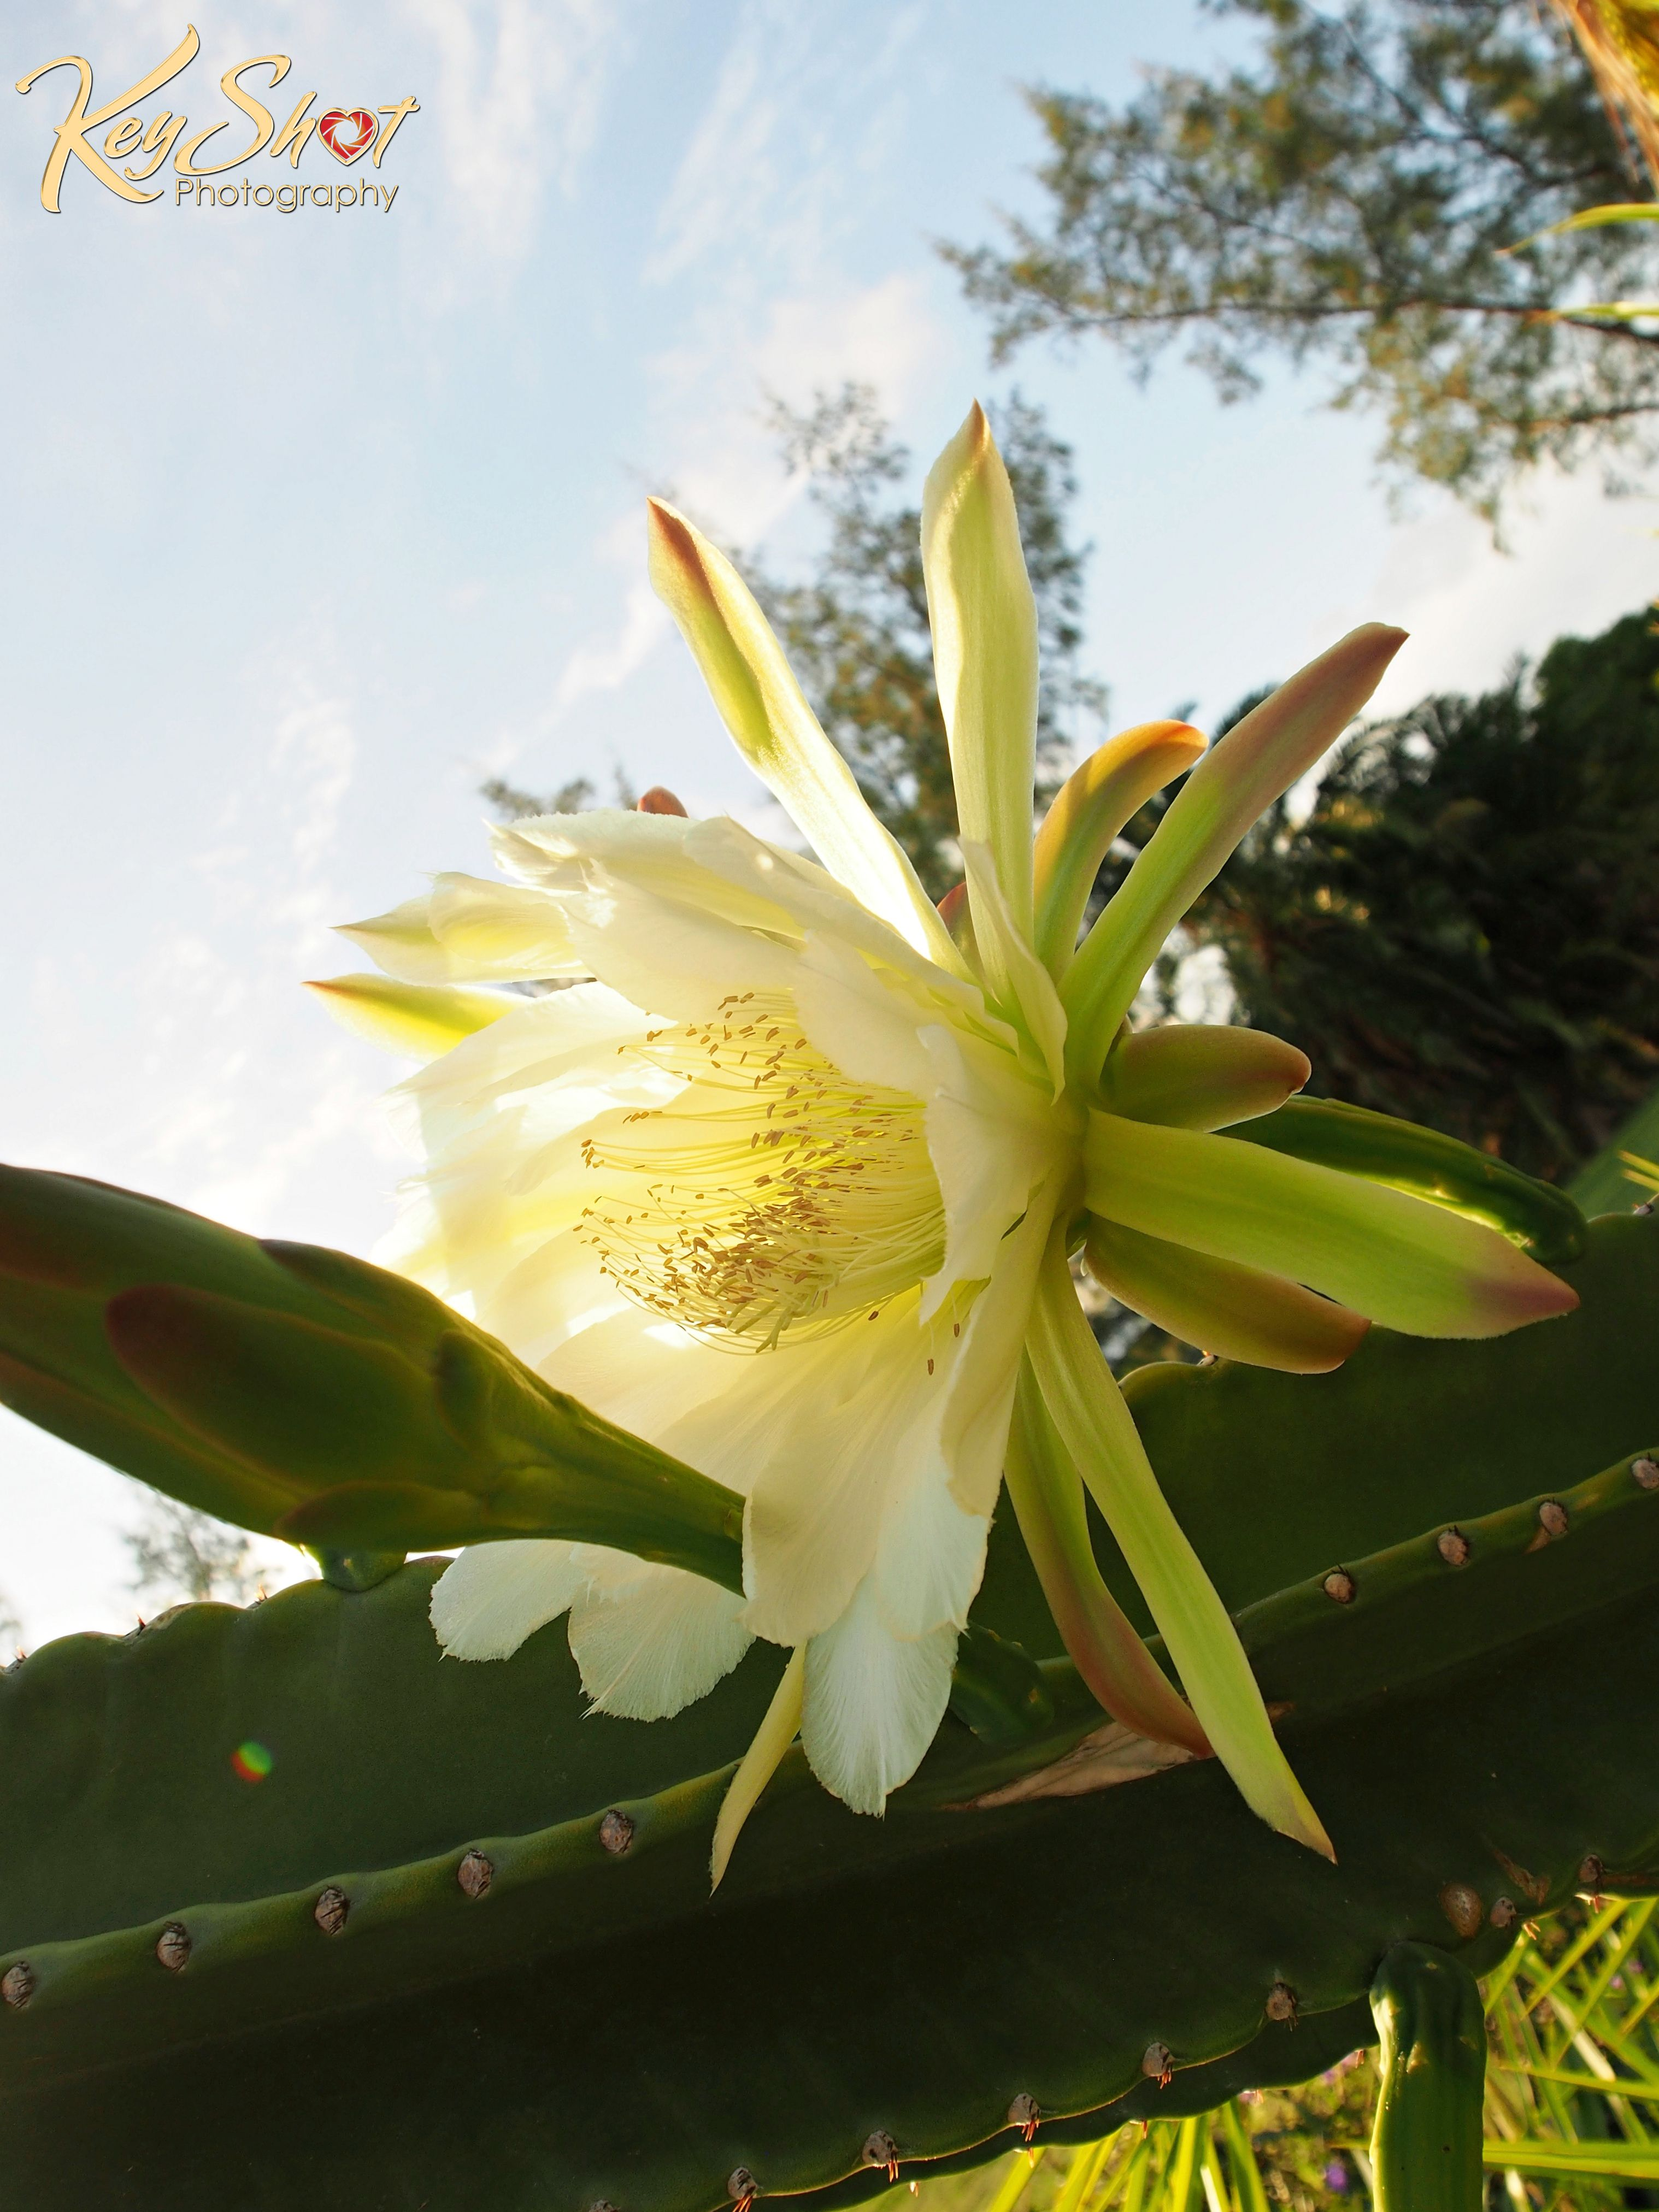 The sun rising on a night blooming cactus flower night blooming